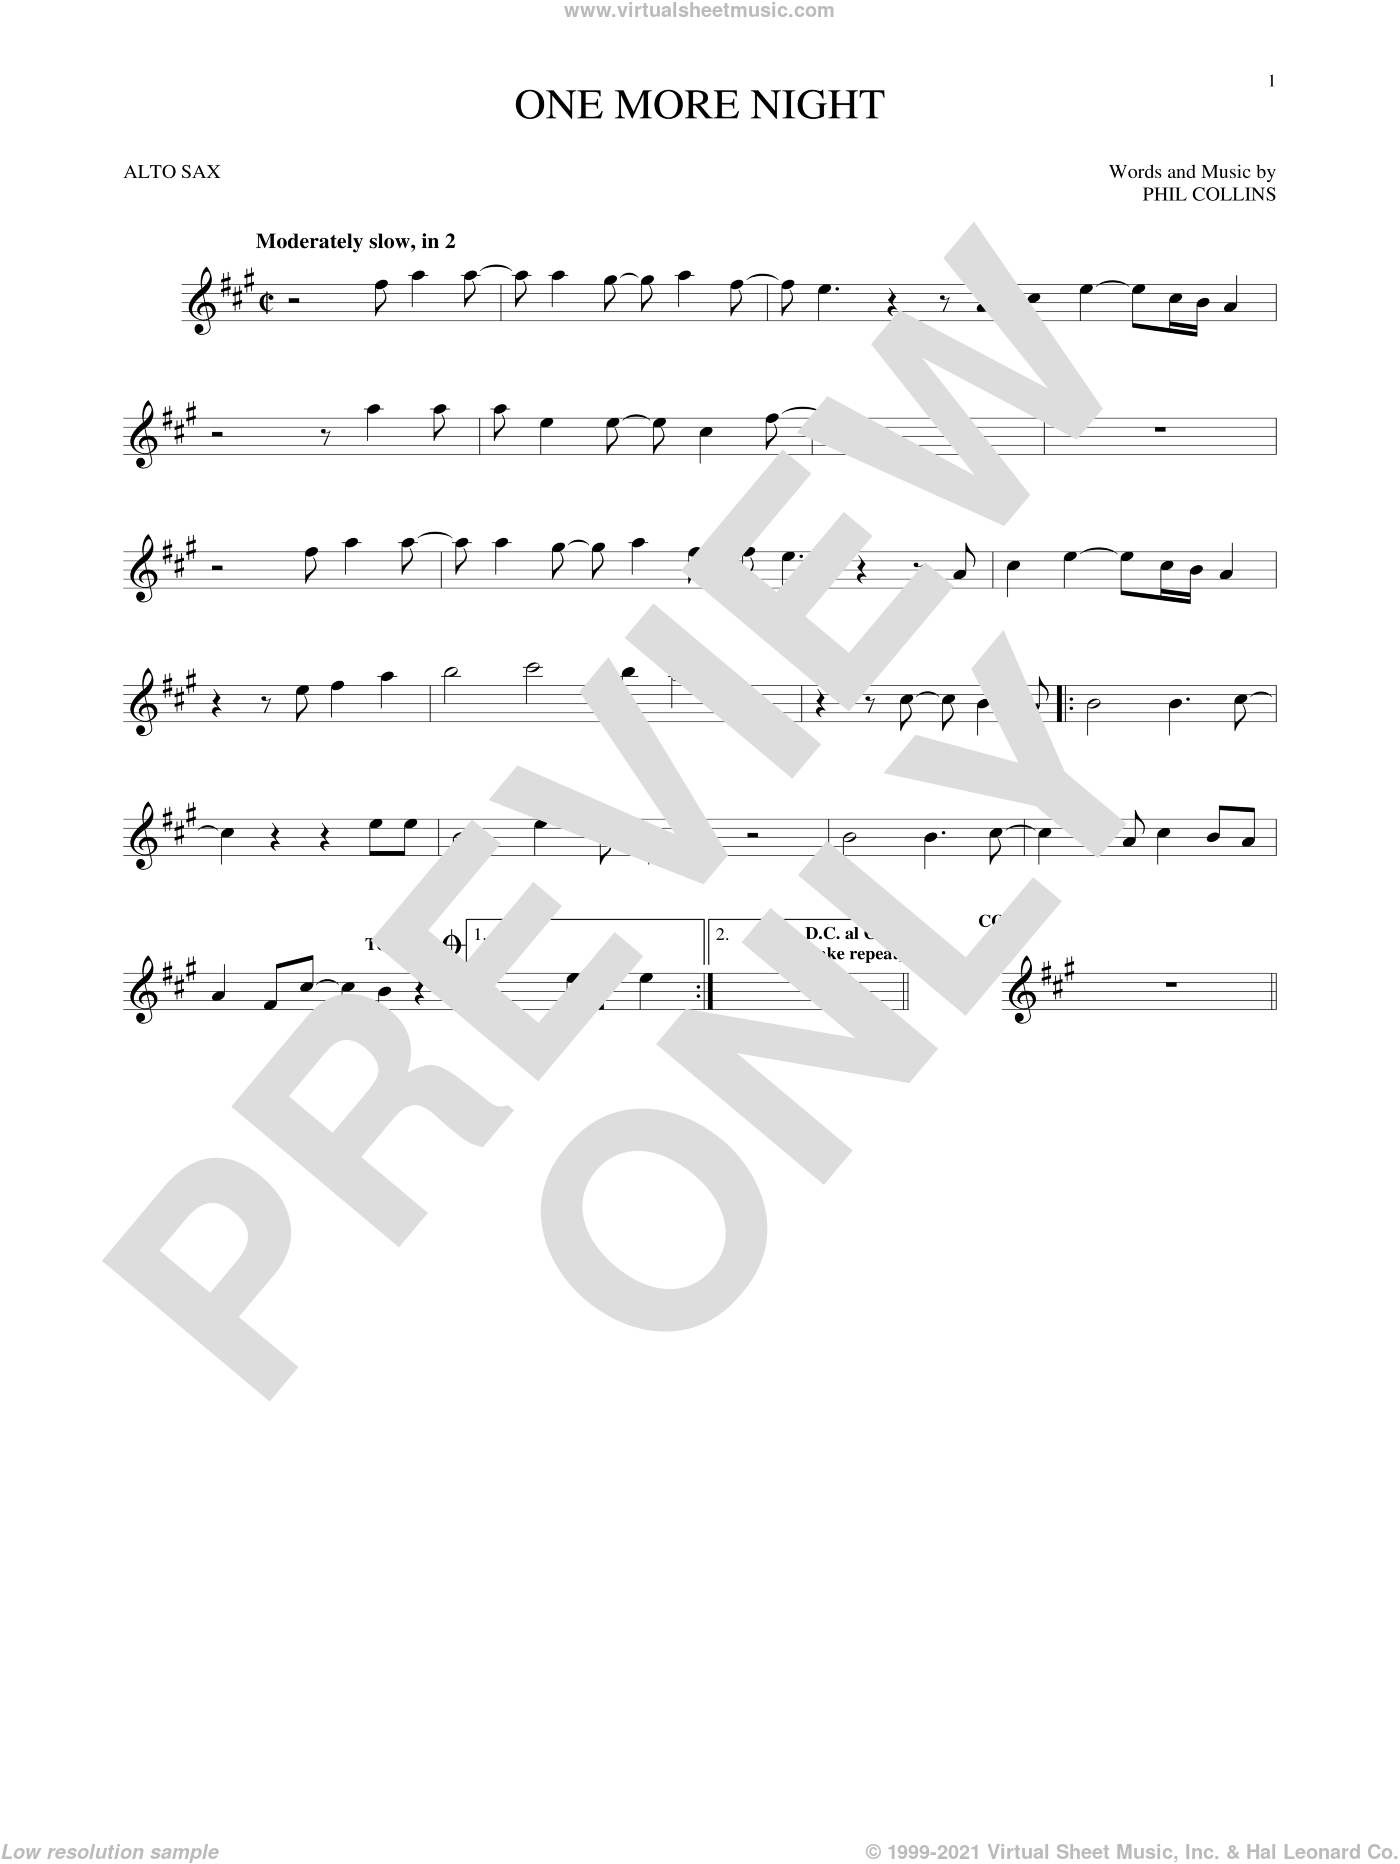 One More Night sheet music for alto saxophone solo by Phil Collins, intermediate skill level